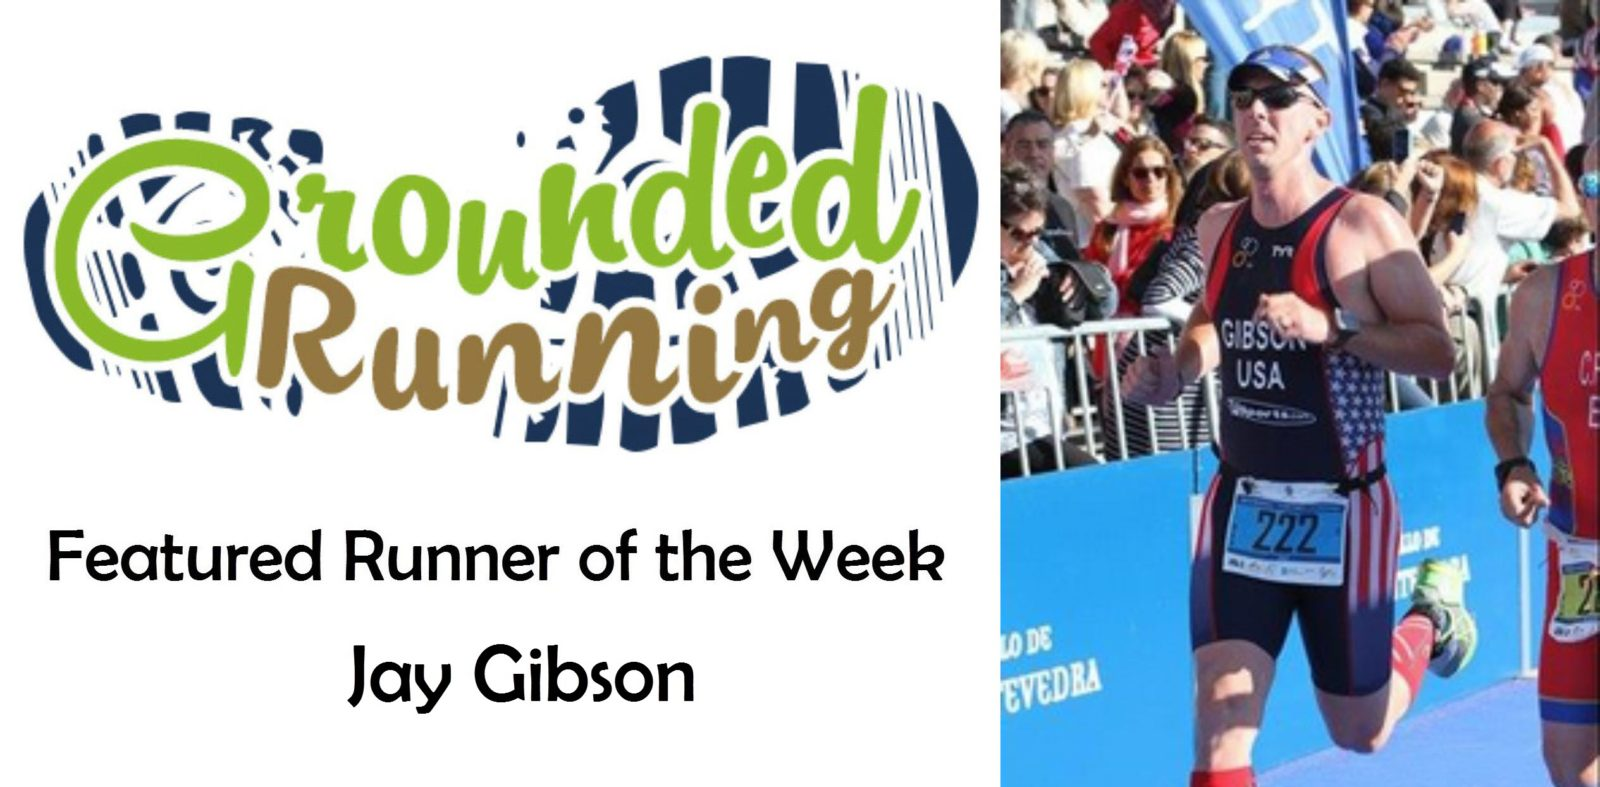 Jay Gibson - Featured Runner of the Week